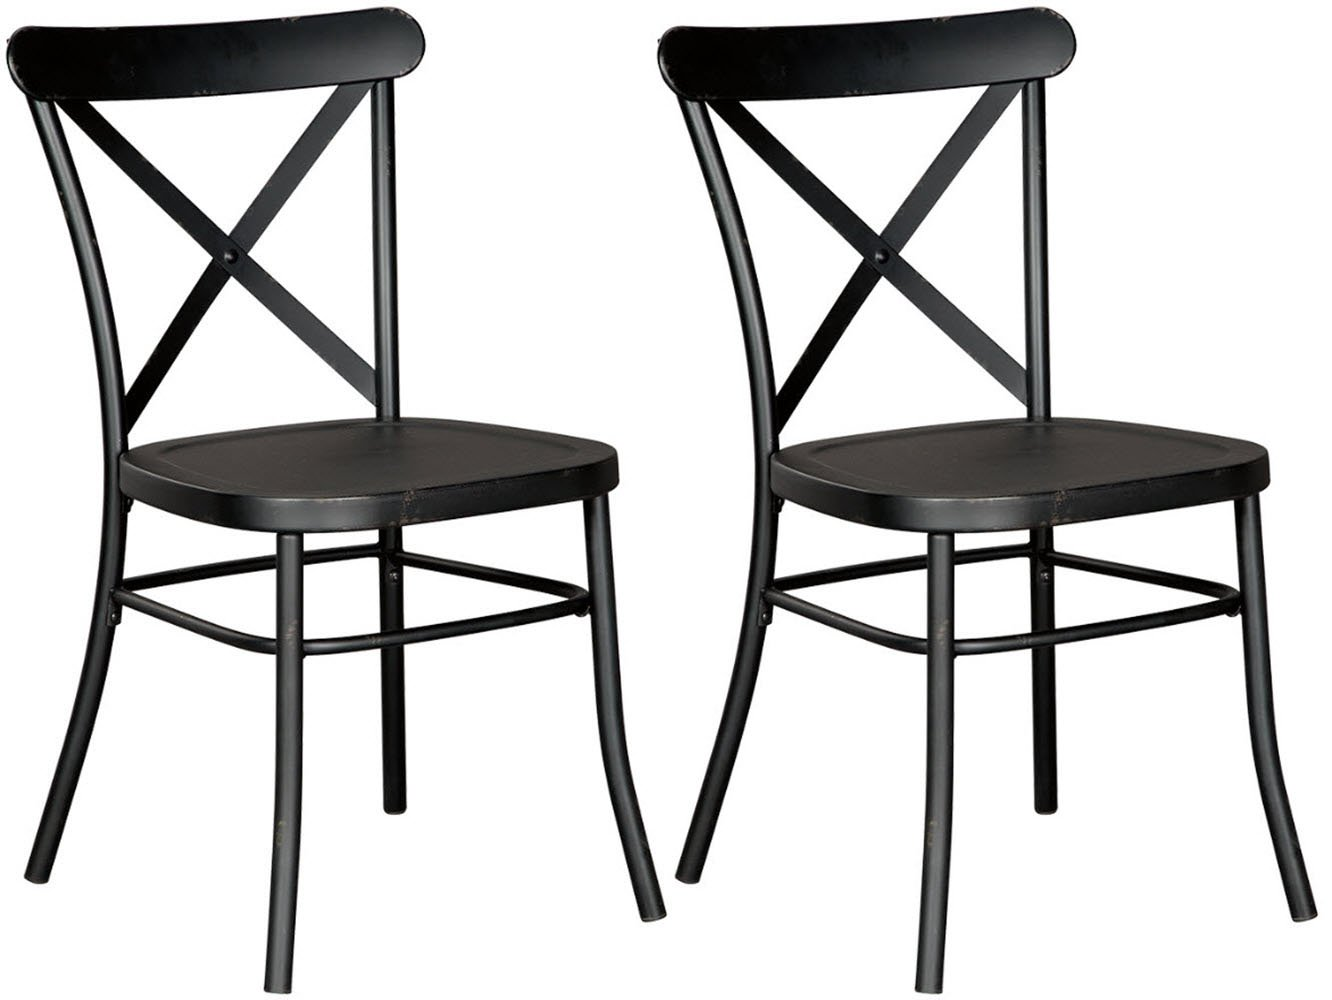 Ashley Furniture Signature Design – Minnona Dining Side Chair – Set of 2 – Cross Back – Vintage Casual Style – Antique Black Finished Metal